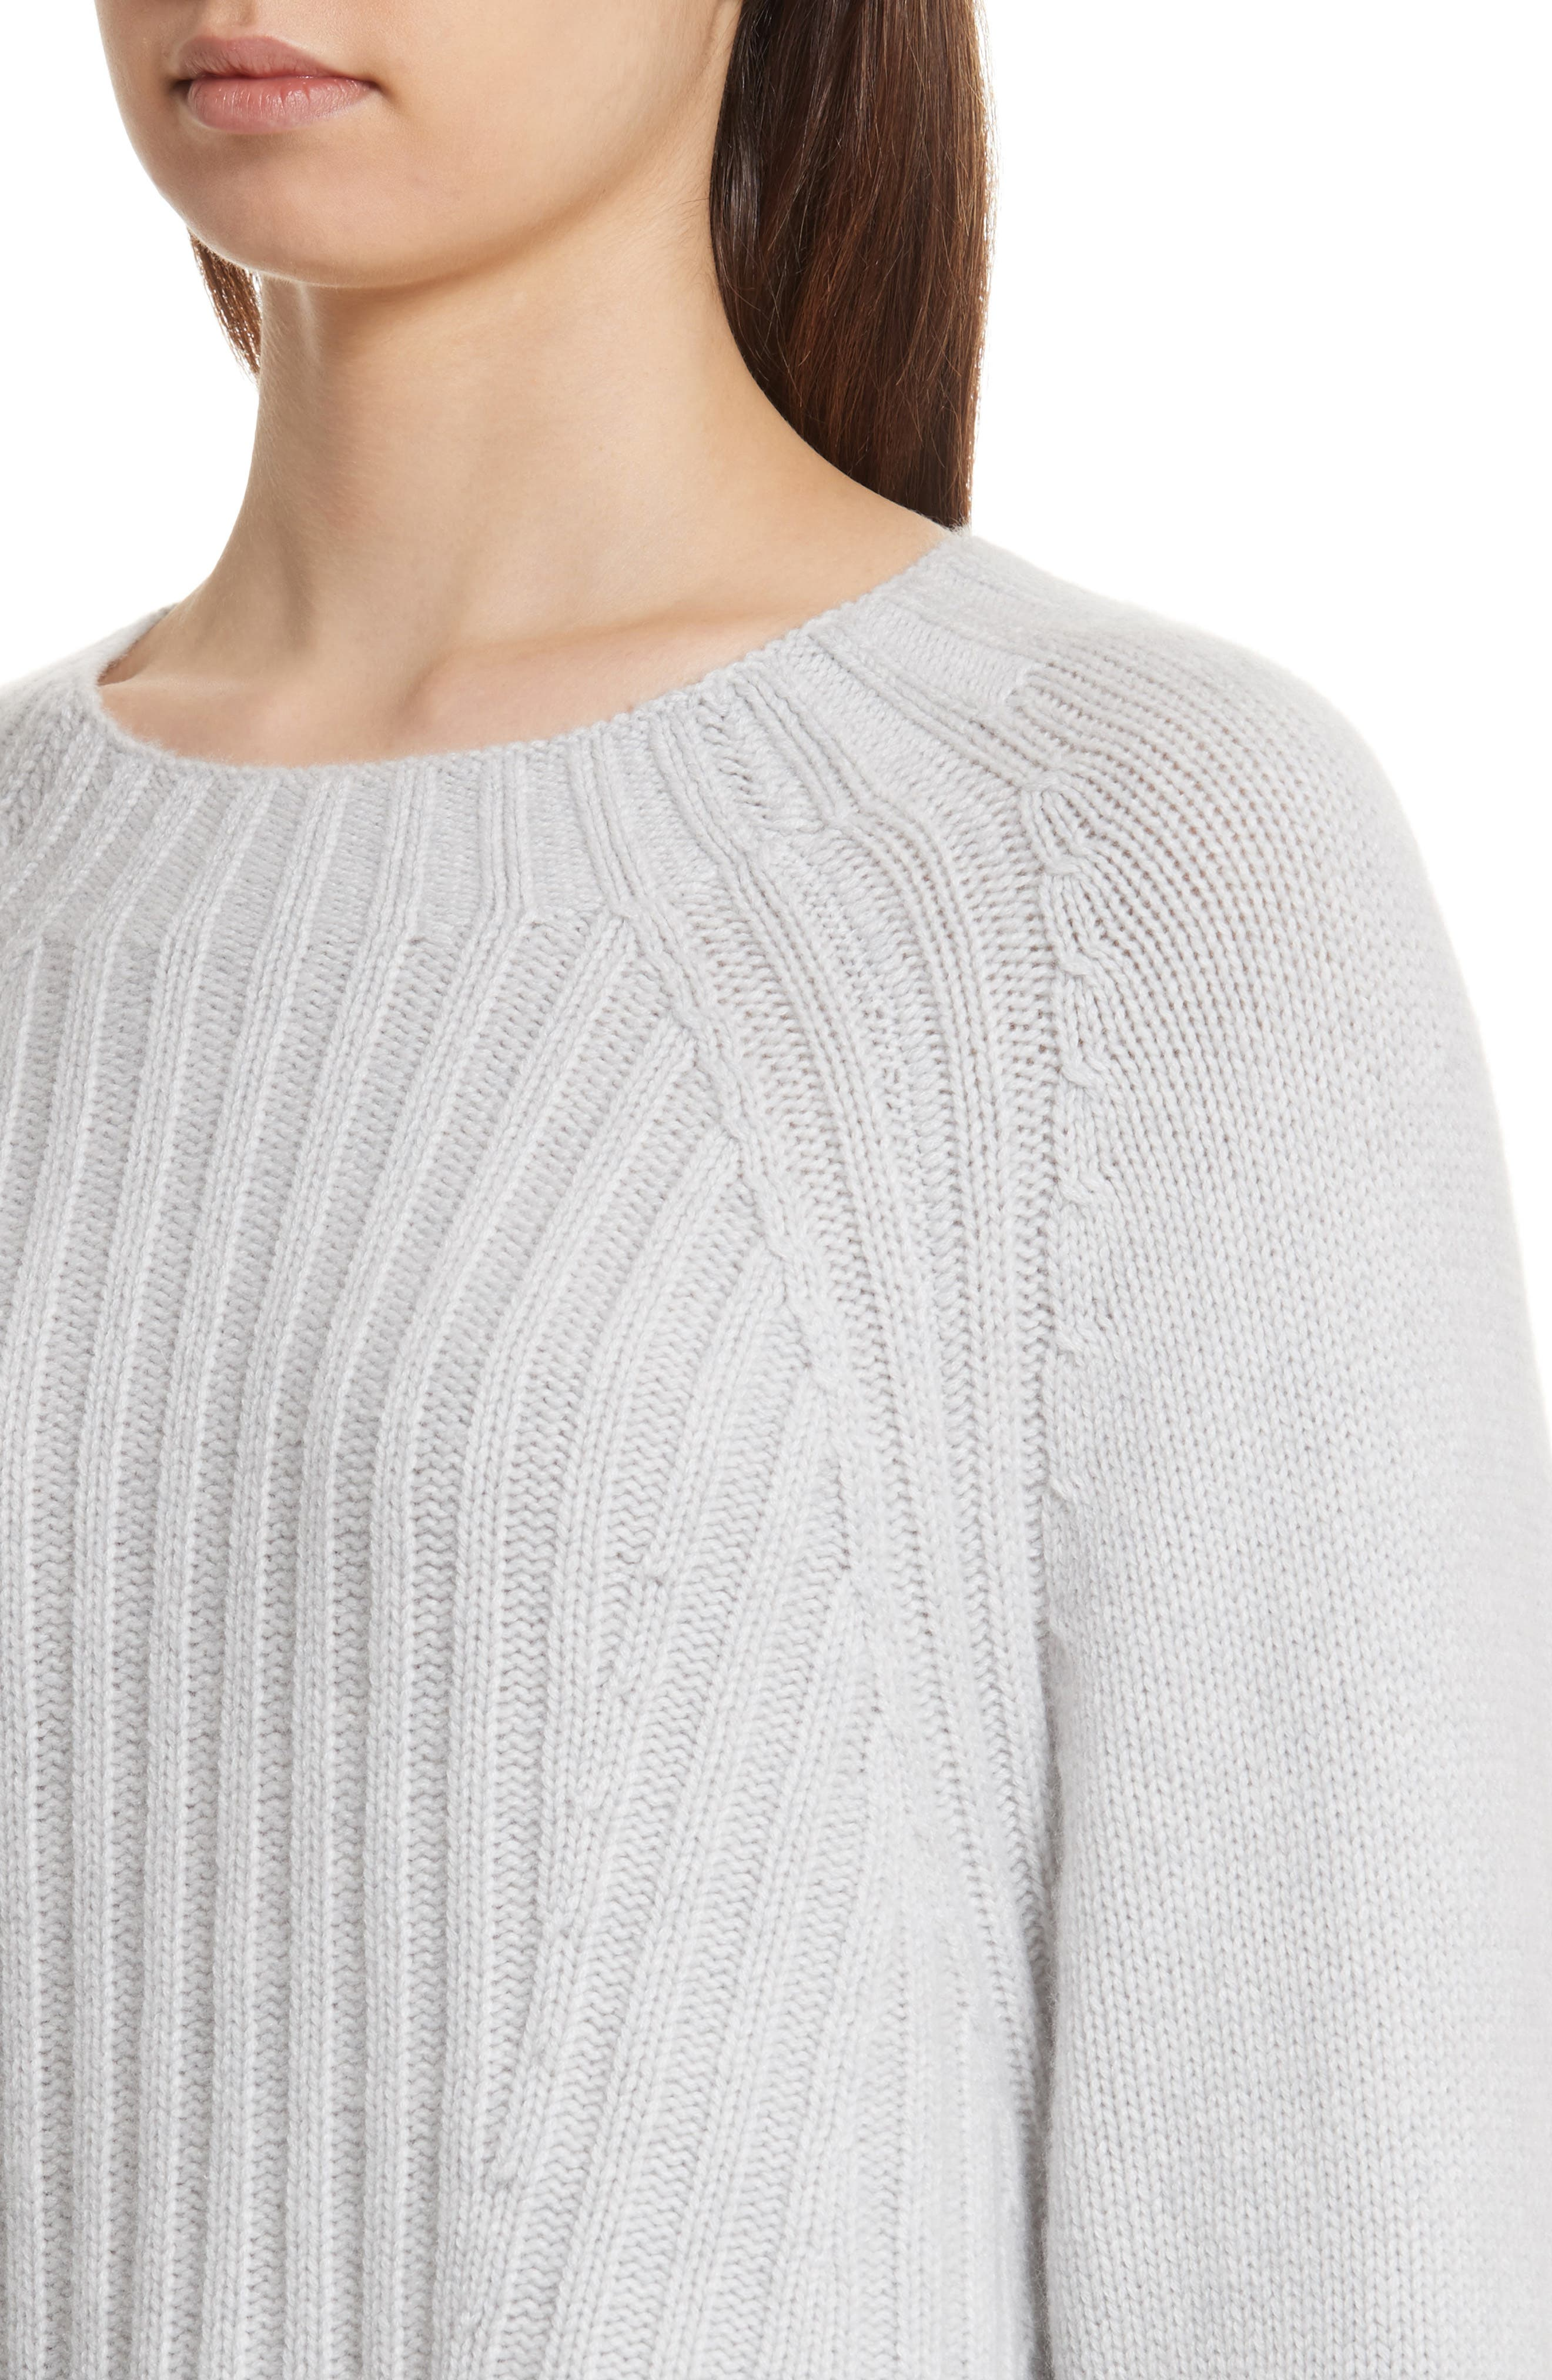 Ribbed Wool & Cashmere Sweater,                             Alternate thumbnail 4, color,                             Light Heather Grey